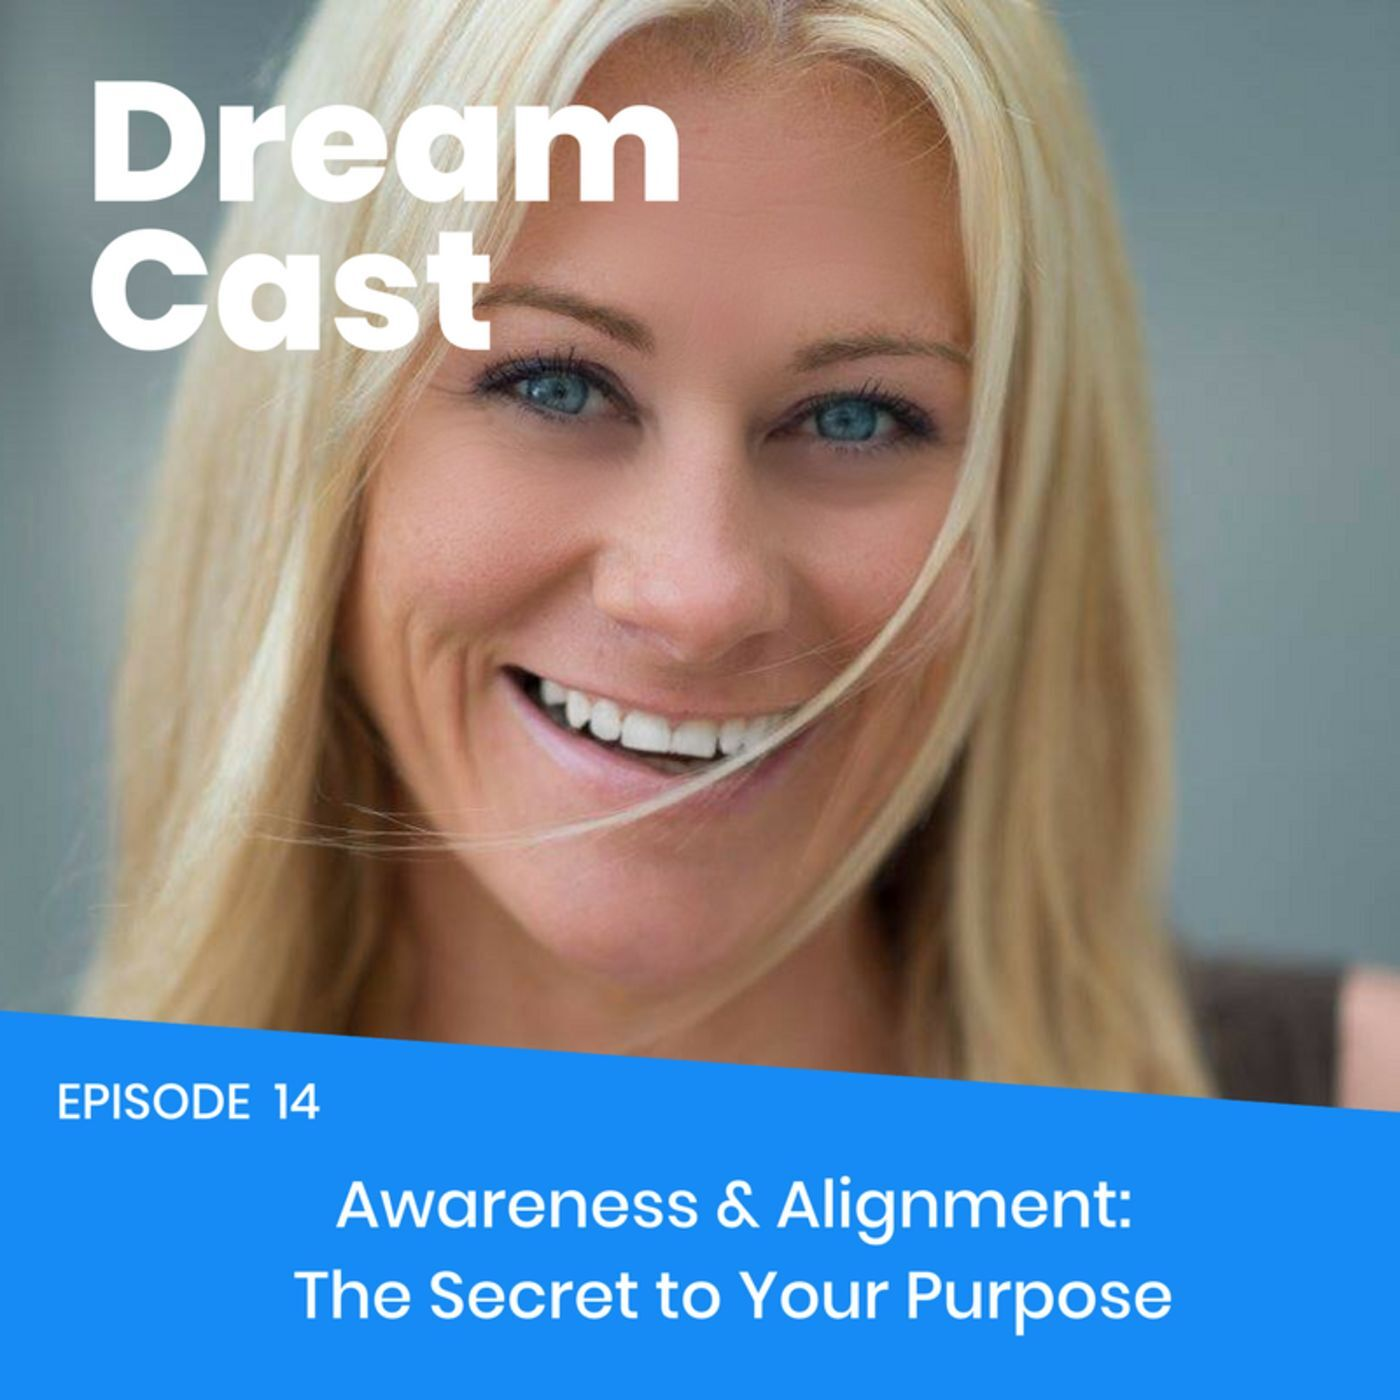 Episode 014 - Awareness & Alignment: The Secret to Your